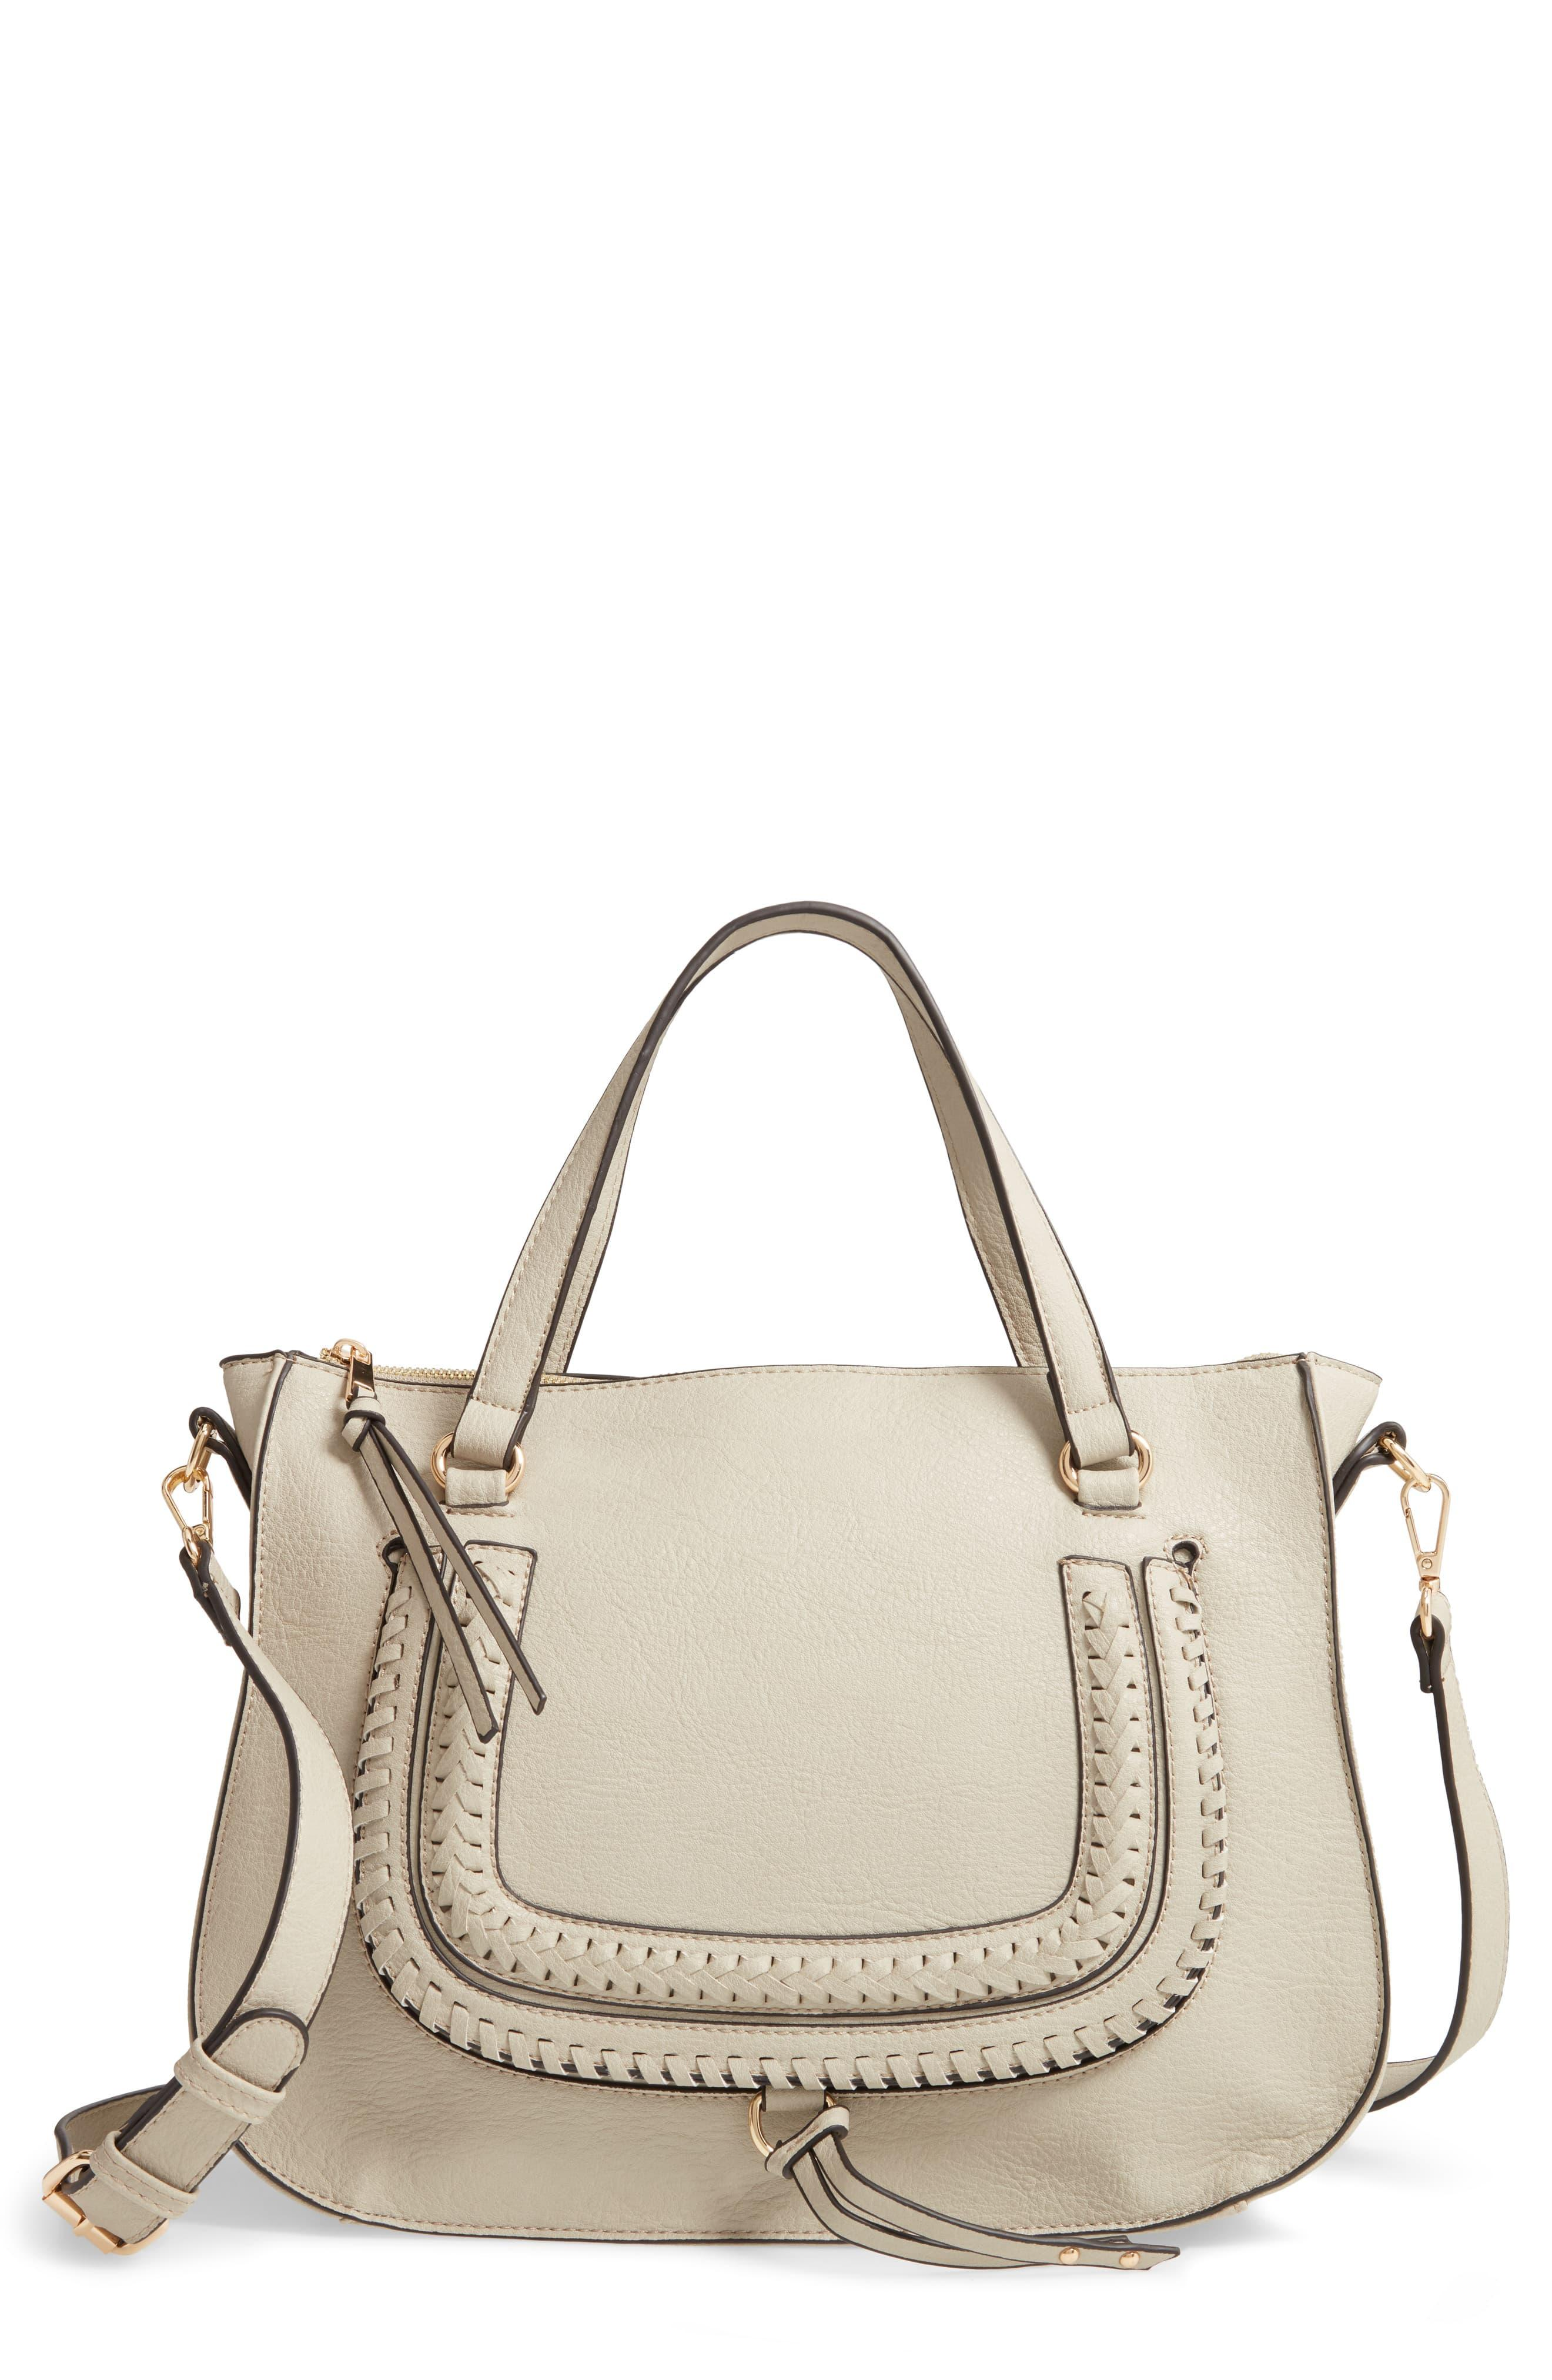 b9585f9d56 Sole Society Destin Faux Leather Satchel - in Natural - Lyst